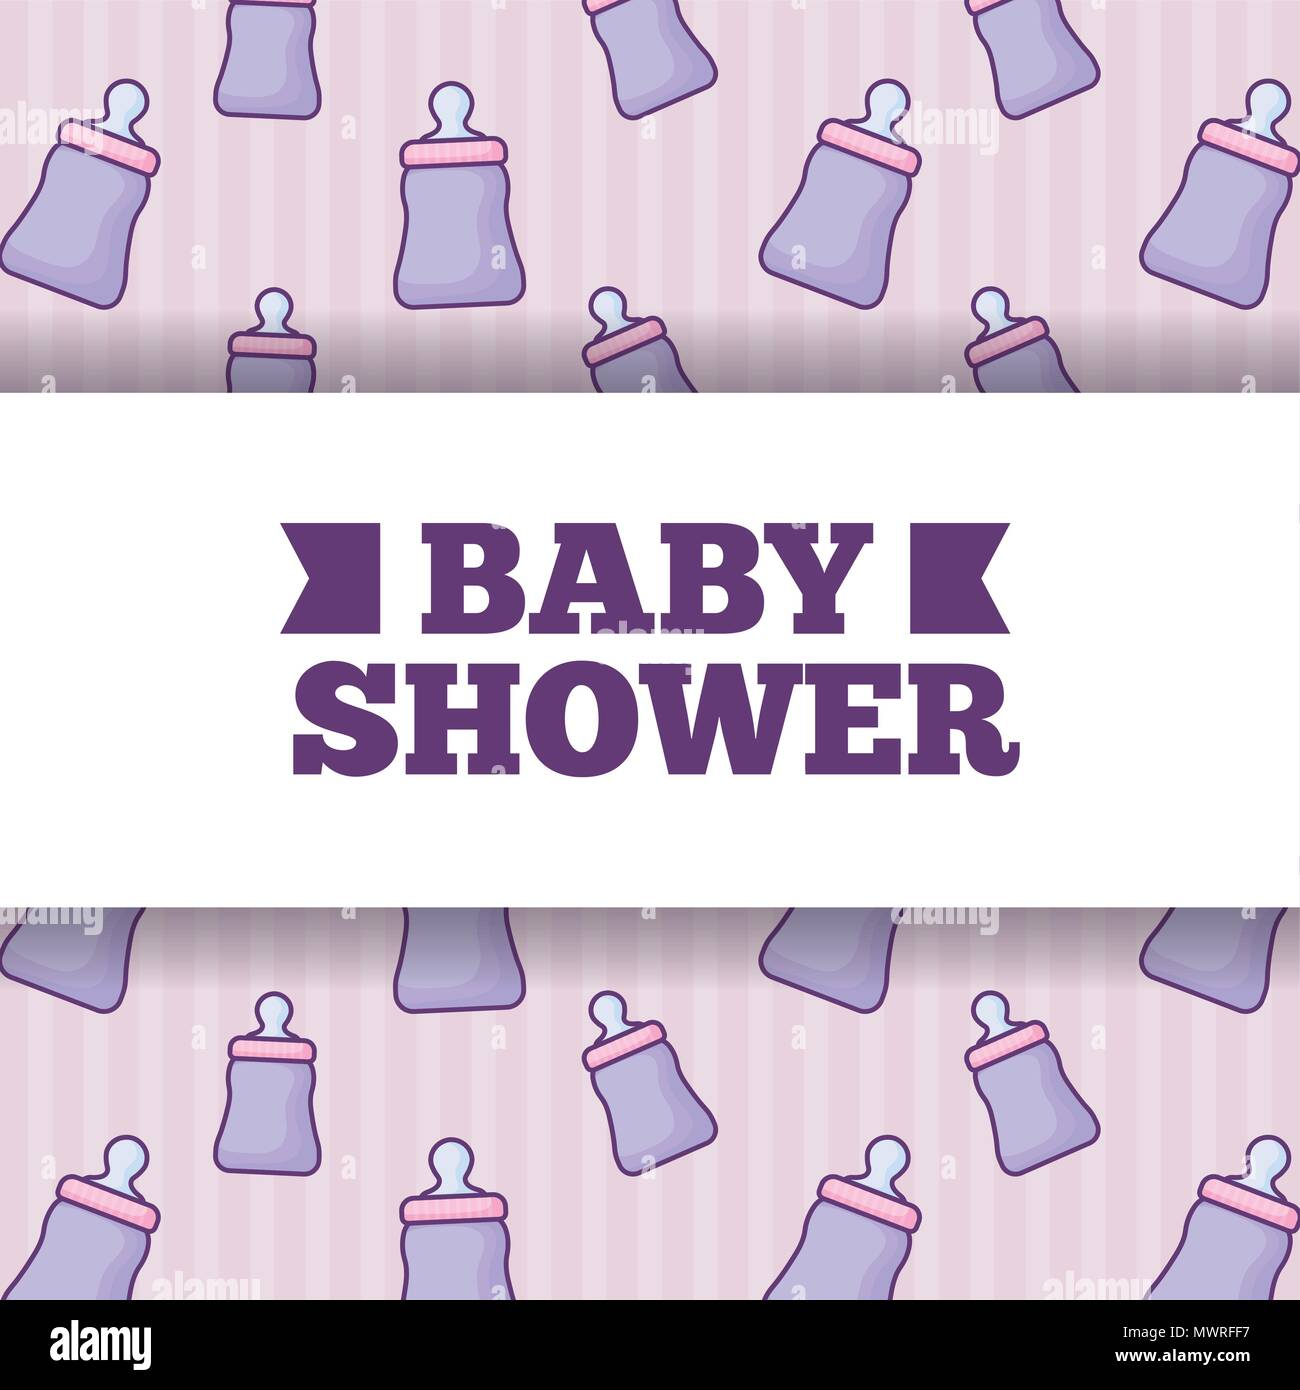 baby shower design over baby bottles background, colorful design. vector illustration - Stock Image